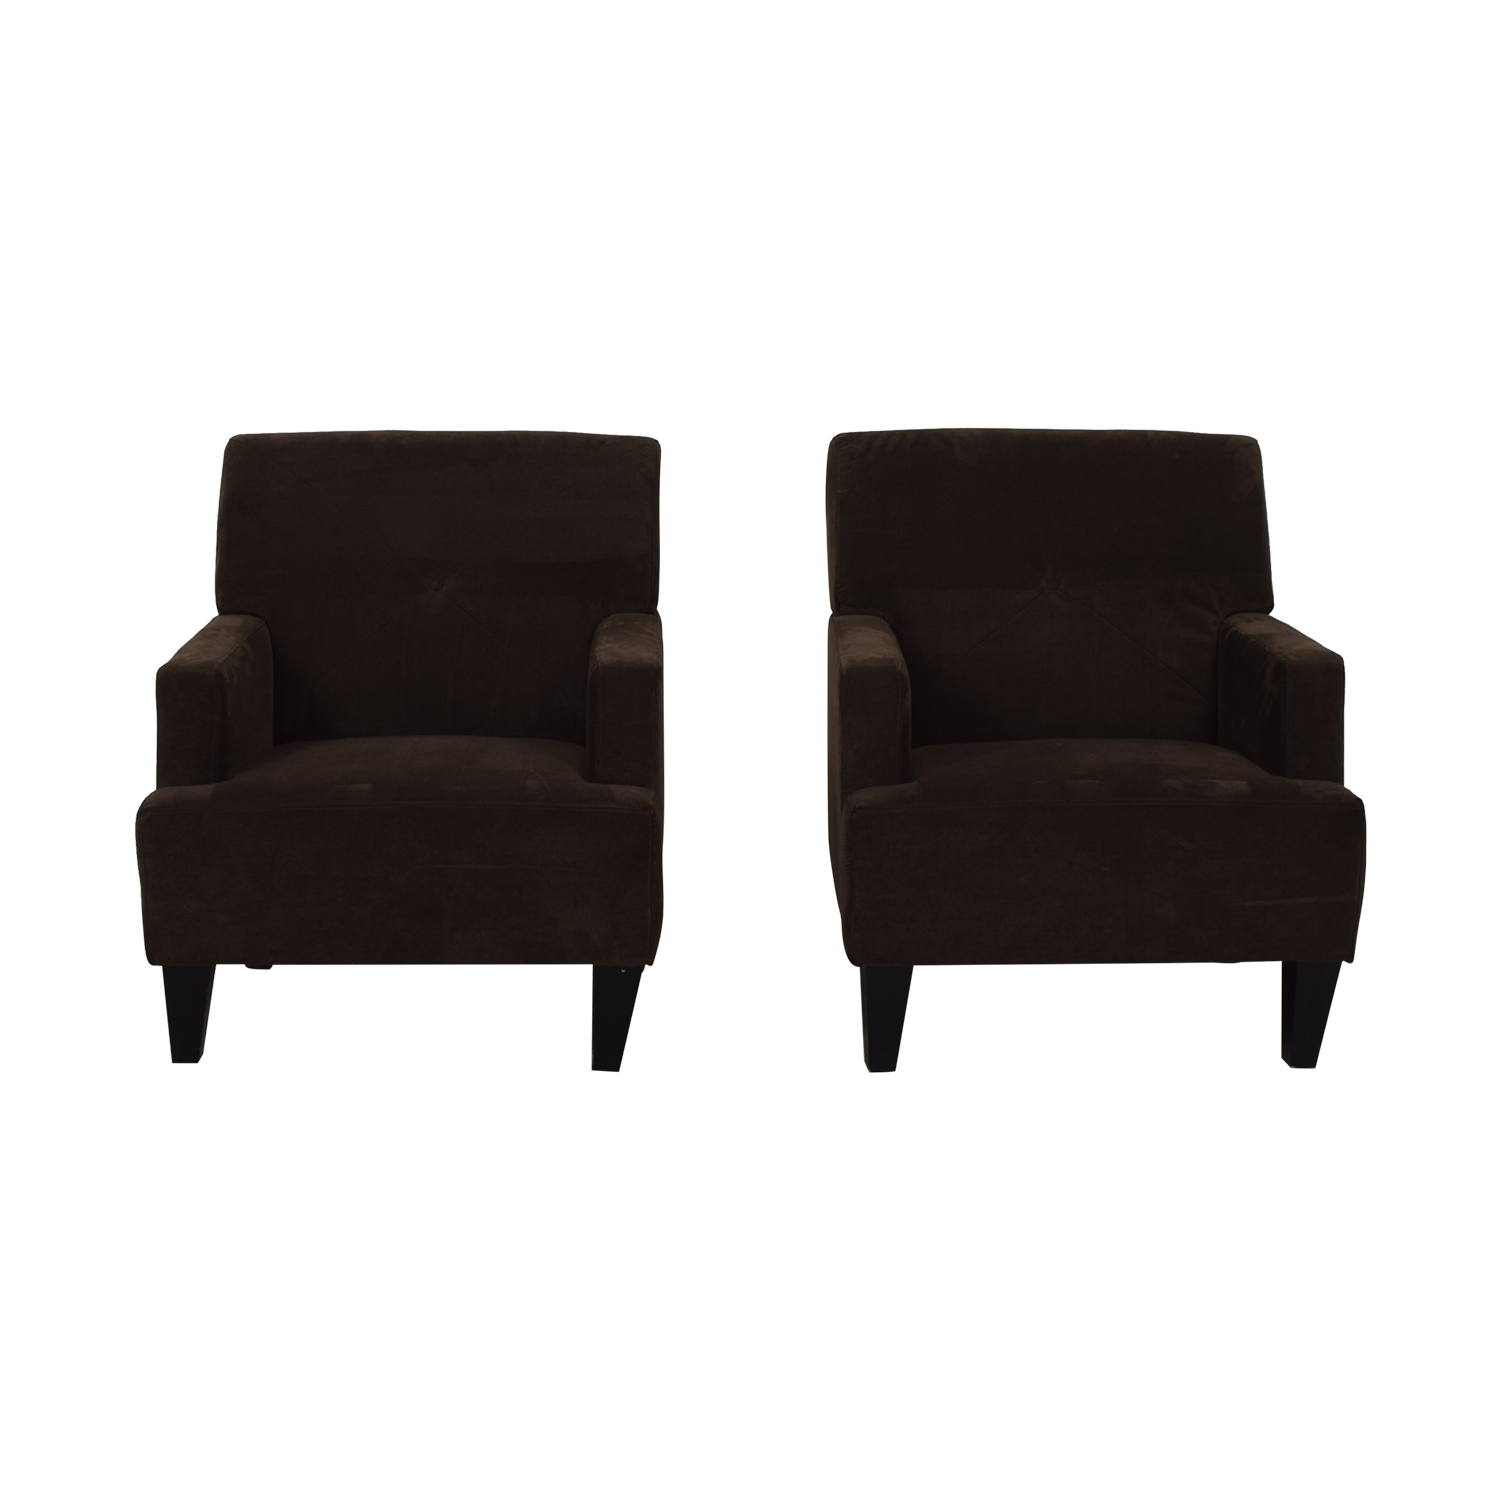 Havertys Havertys Brown Arm Accent Chairs price